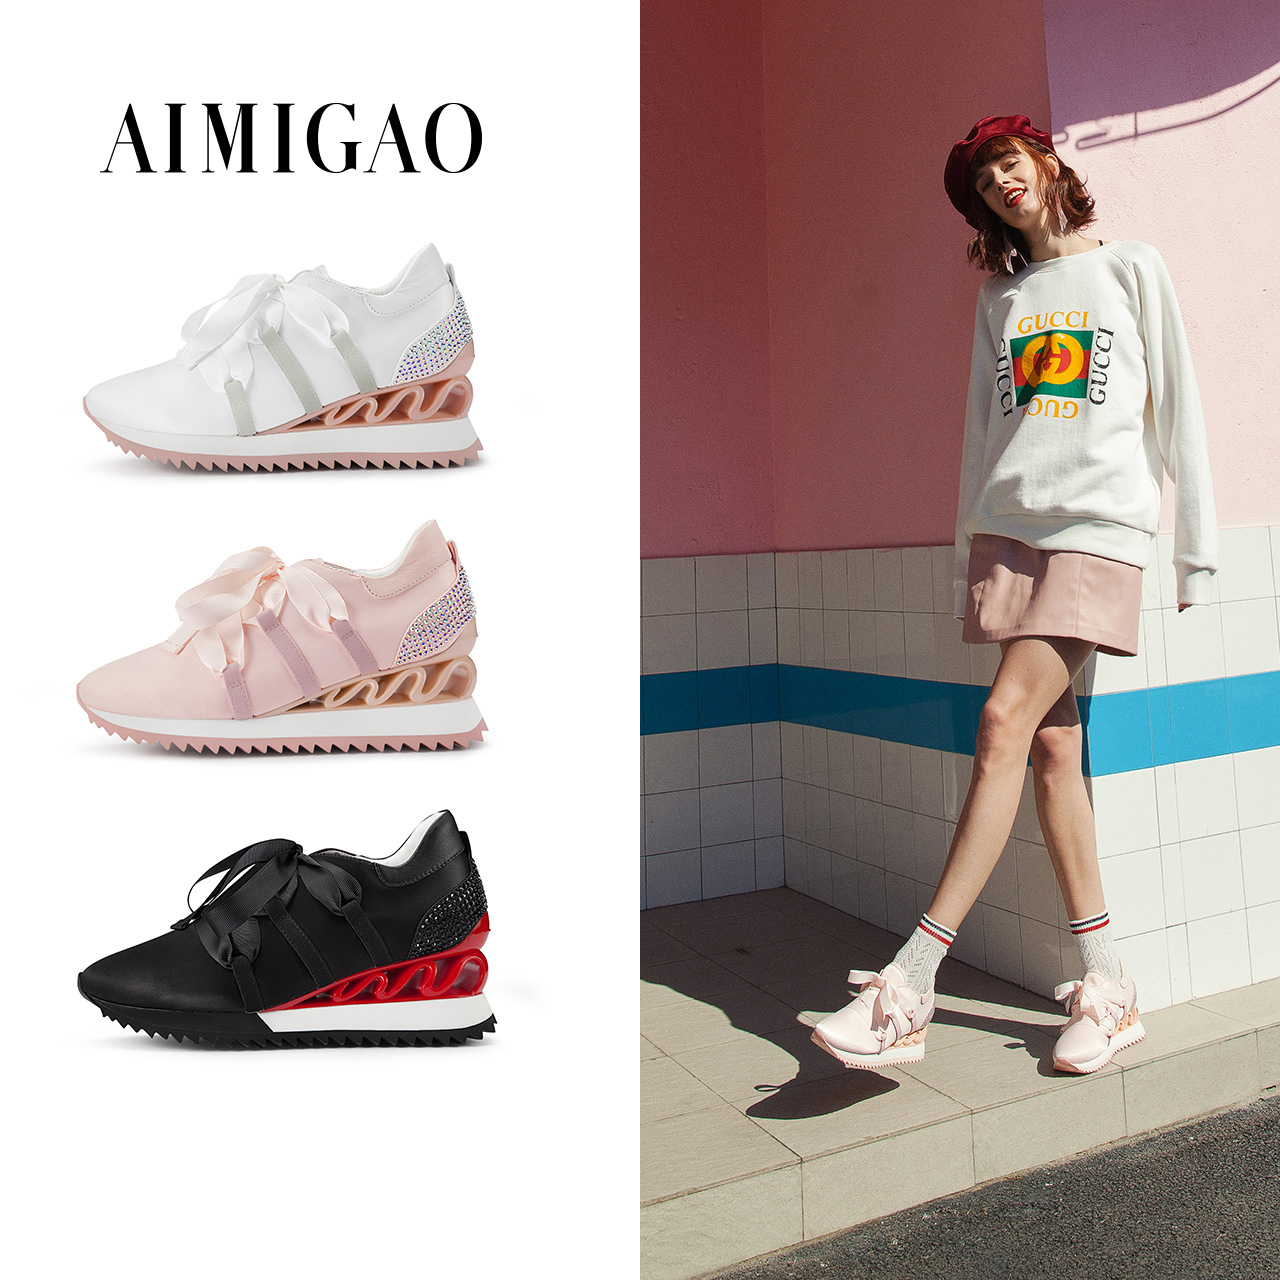 AIMIGAO Pink Fashion Bow-Knot Lace-Up Flat Shoes Silk Platform Thick Bottom Street Style Women Casual Shoes 2018 Spring New beffery 2018 british style patent leather flat shoes fashion thick bottom platform shoes for women lace up casual shoes a18a309